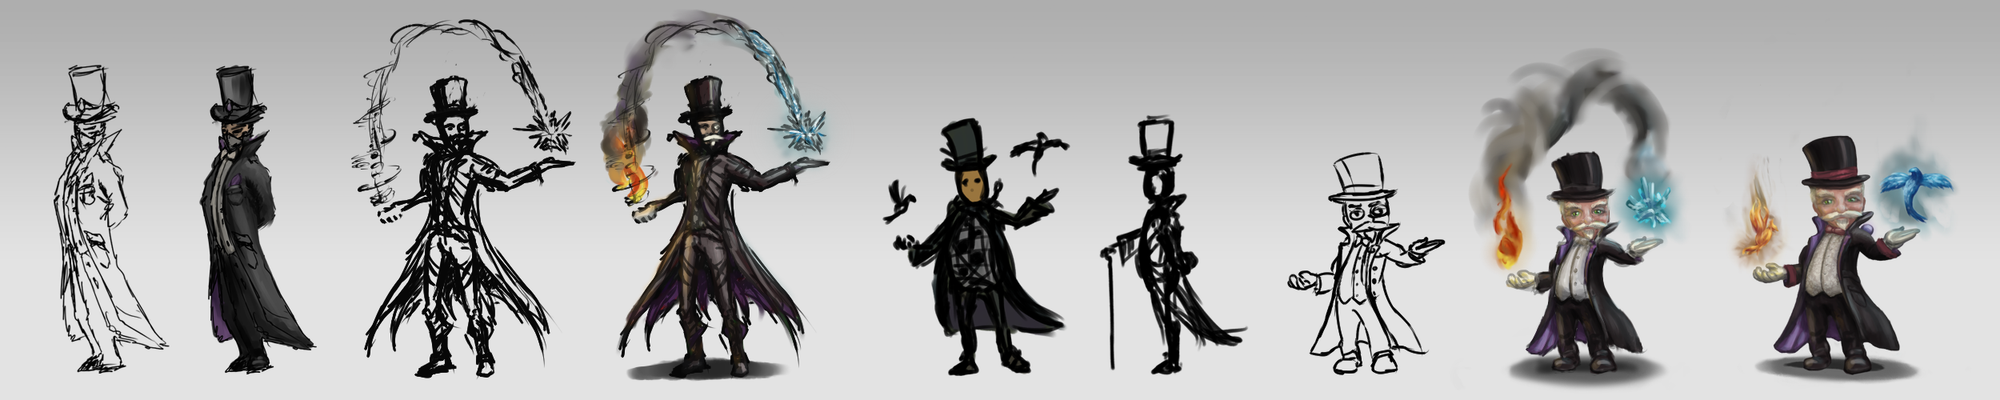 10 Character Design Tips : The illusionist character ideas by akiftop on deviantart